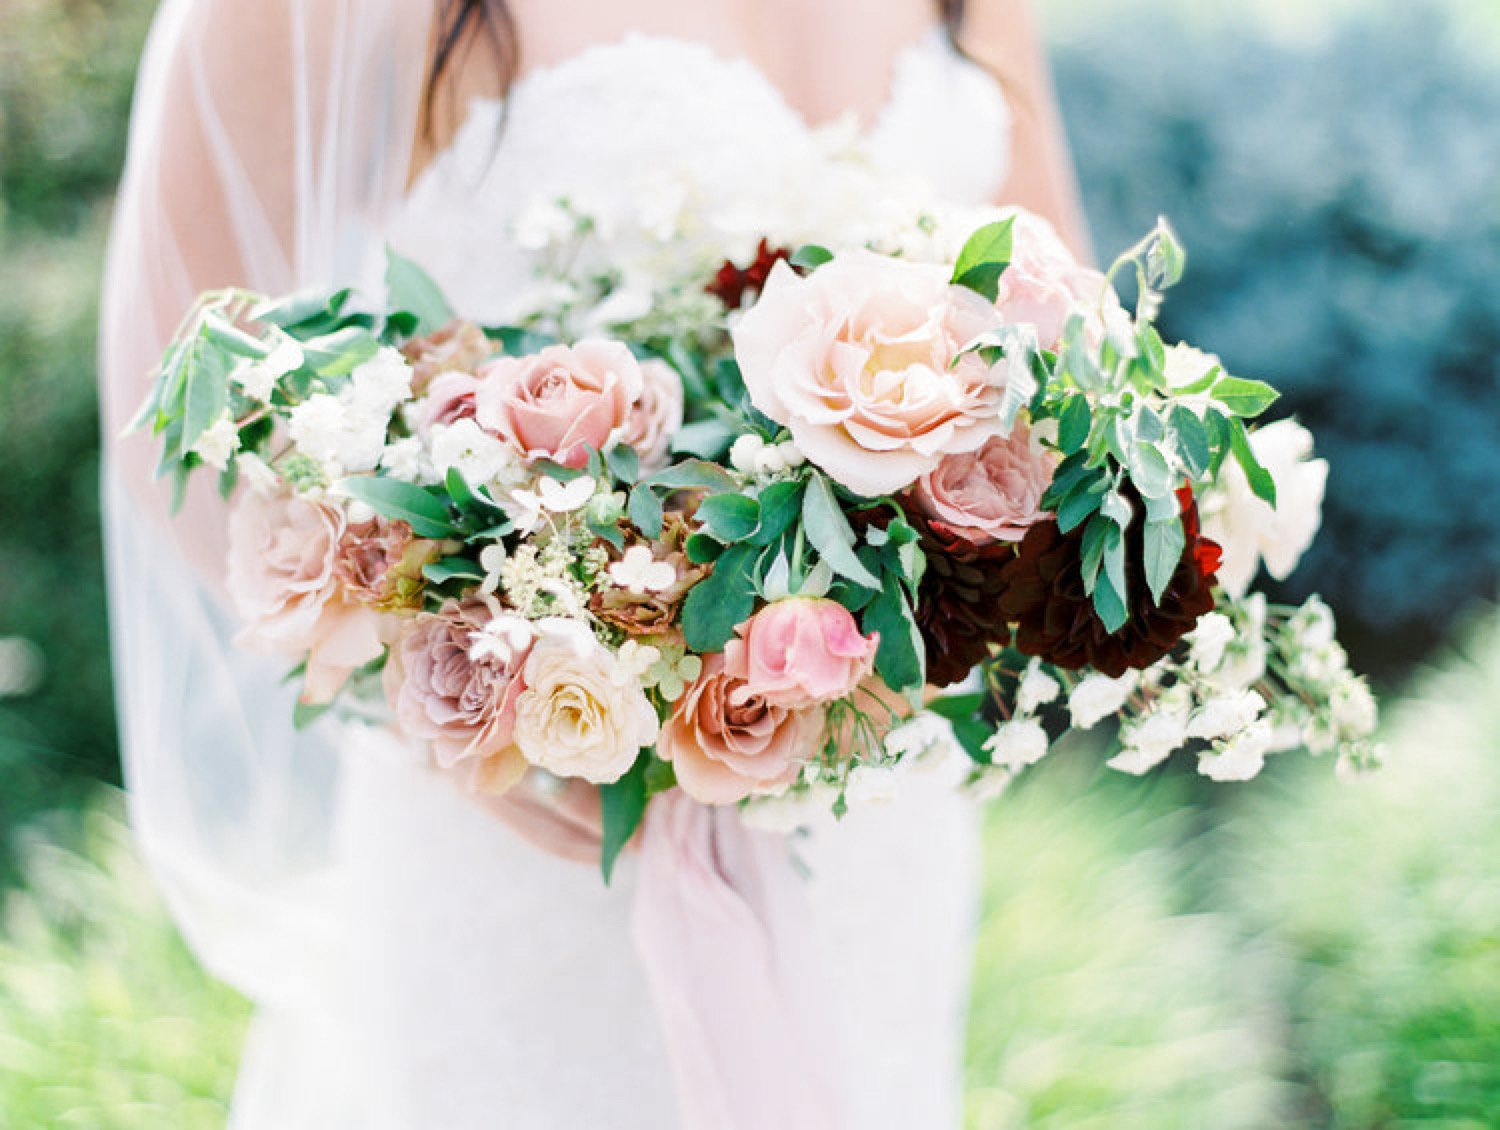 Bride holding a classic bouquet with blush and burgundy tones and greenery.